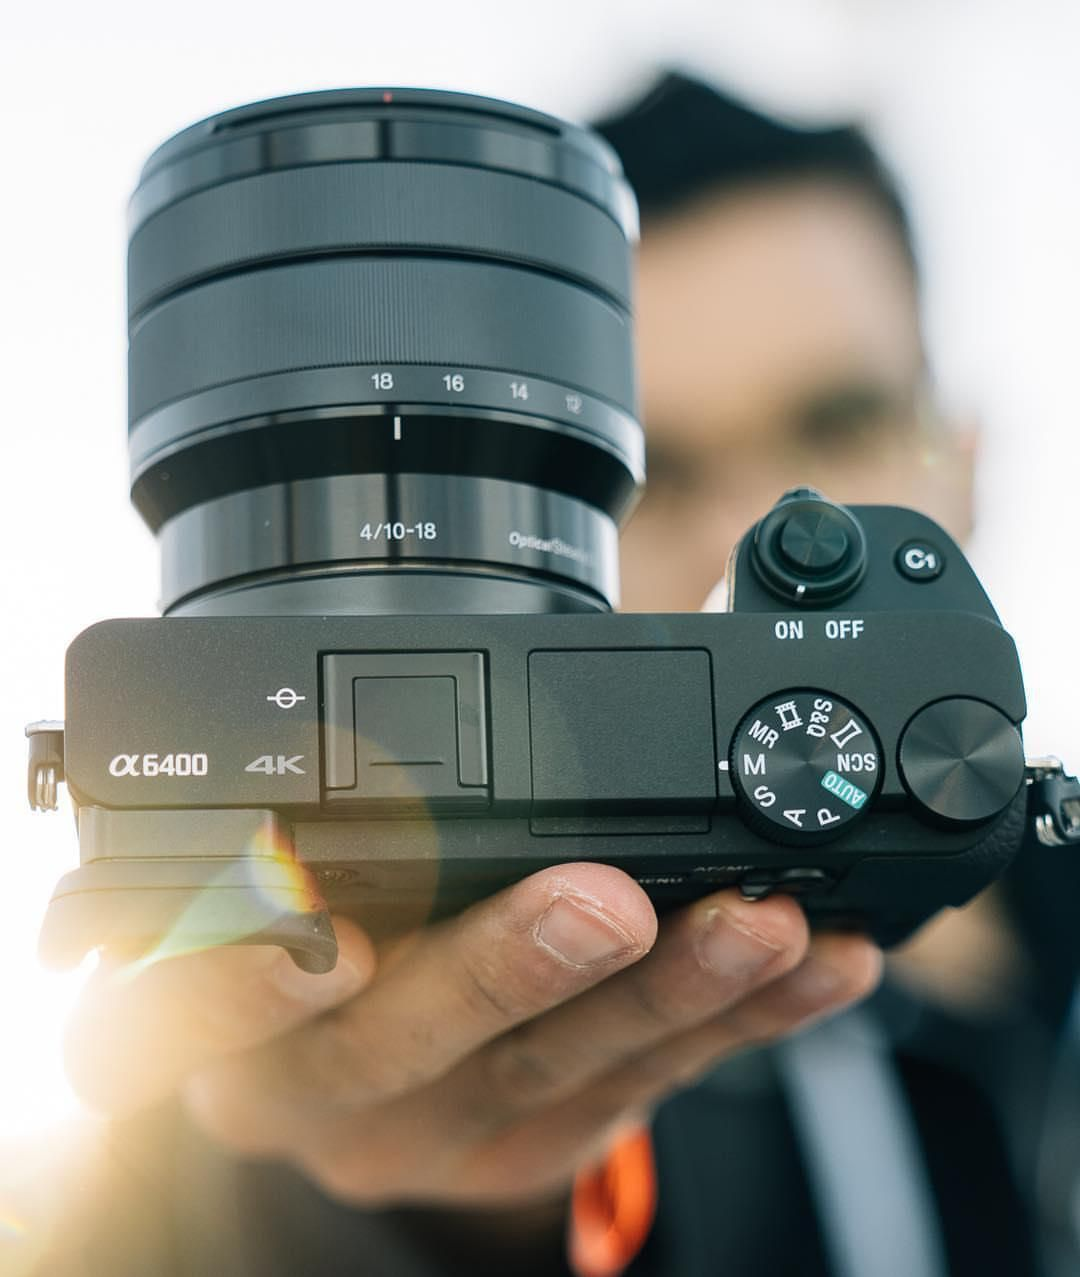 The Vlogging Setup Sony A6400 Sony E 10 18mm F 4 Ois P S It S Also Great For Landscapes Sony Camera Vlogging Setup Sony A6400